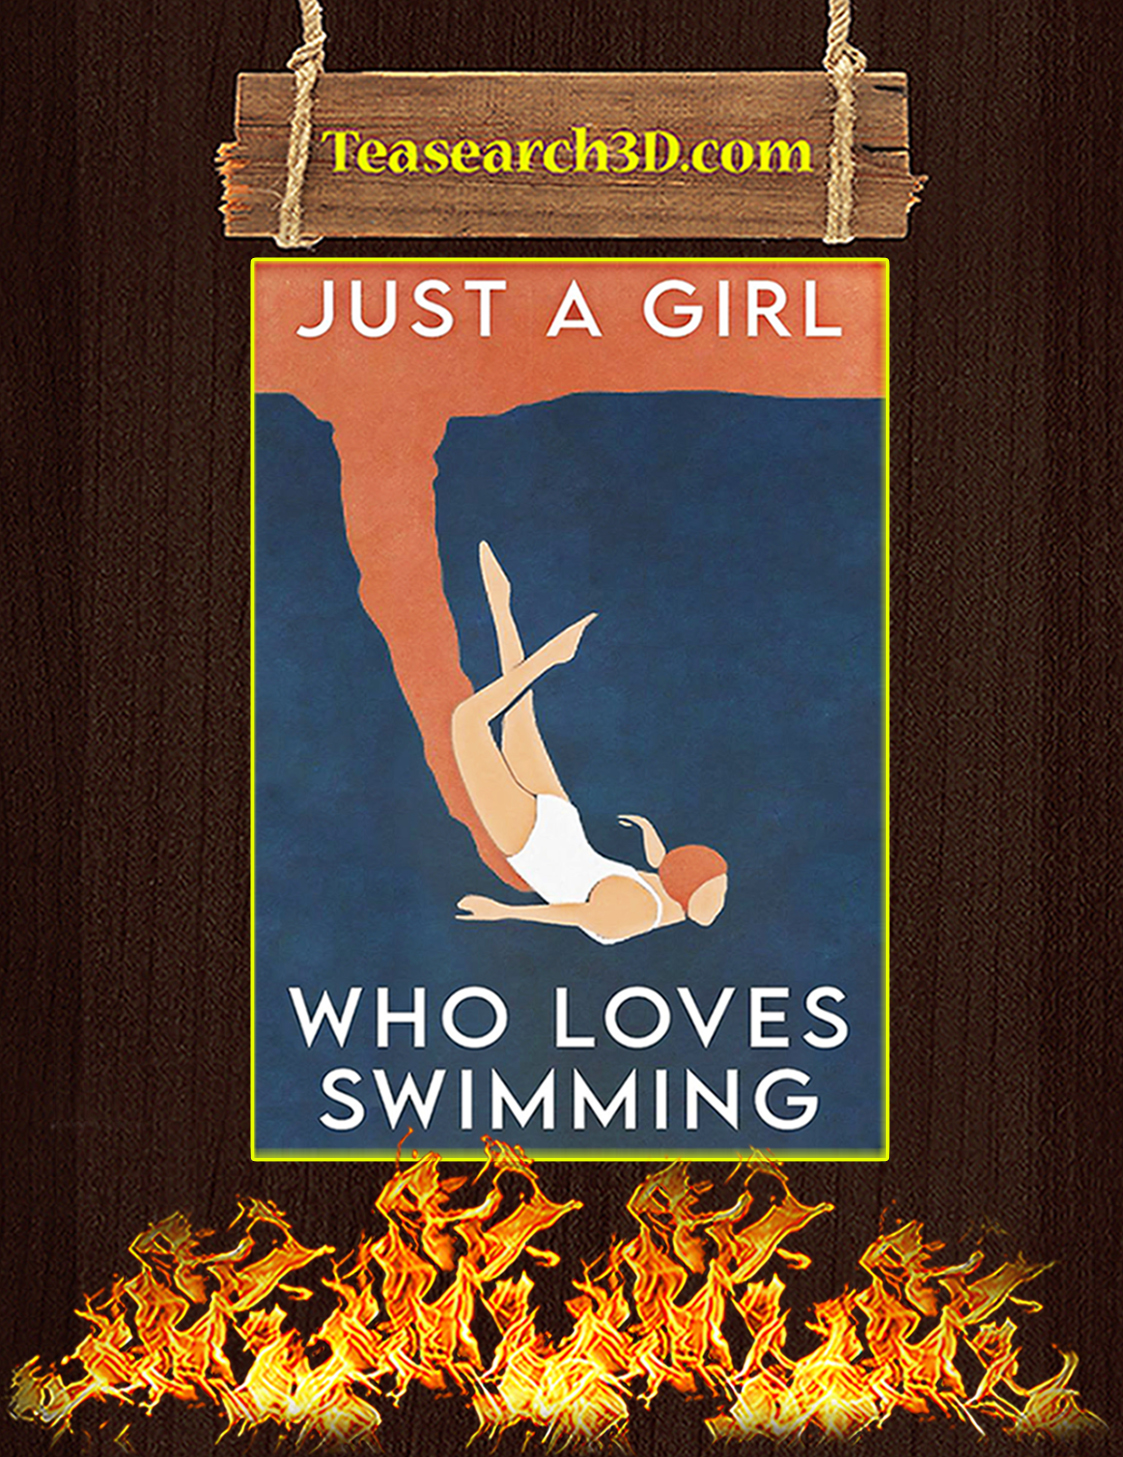 Swimming Just a girl who loves poster A3